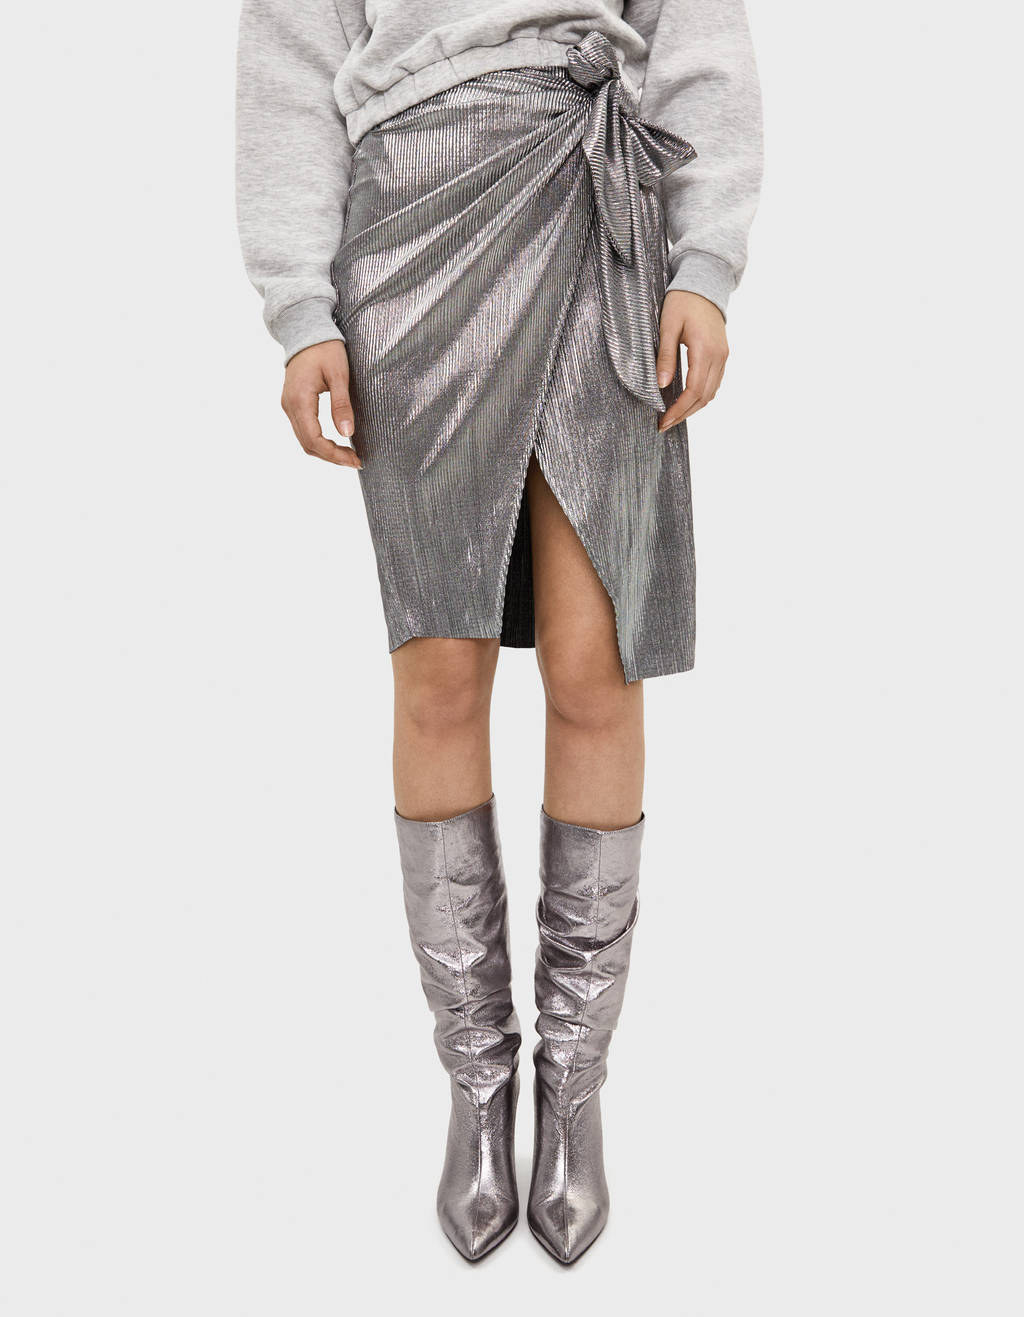 Metallic midi skirt with a slit